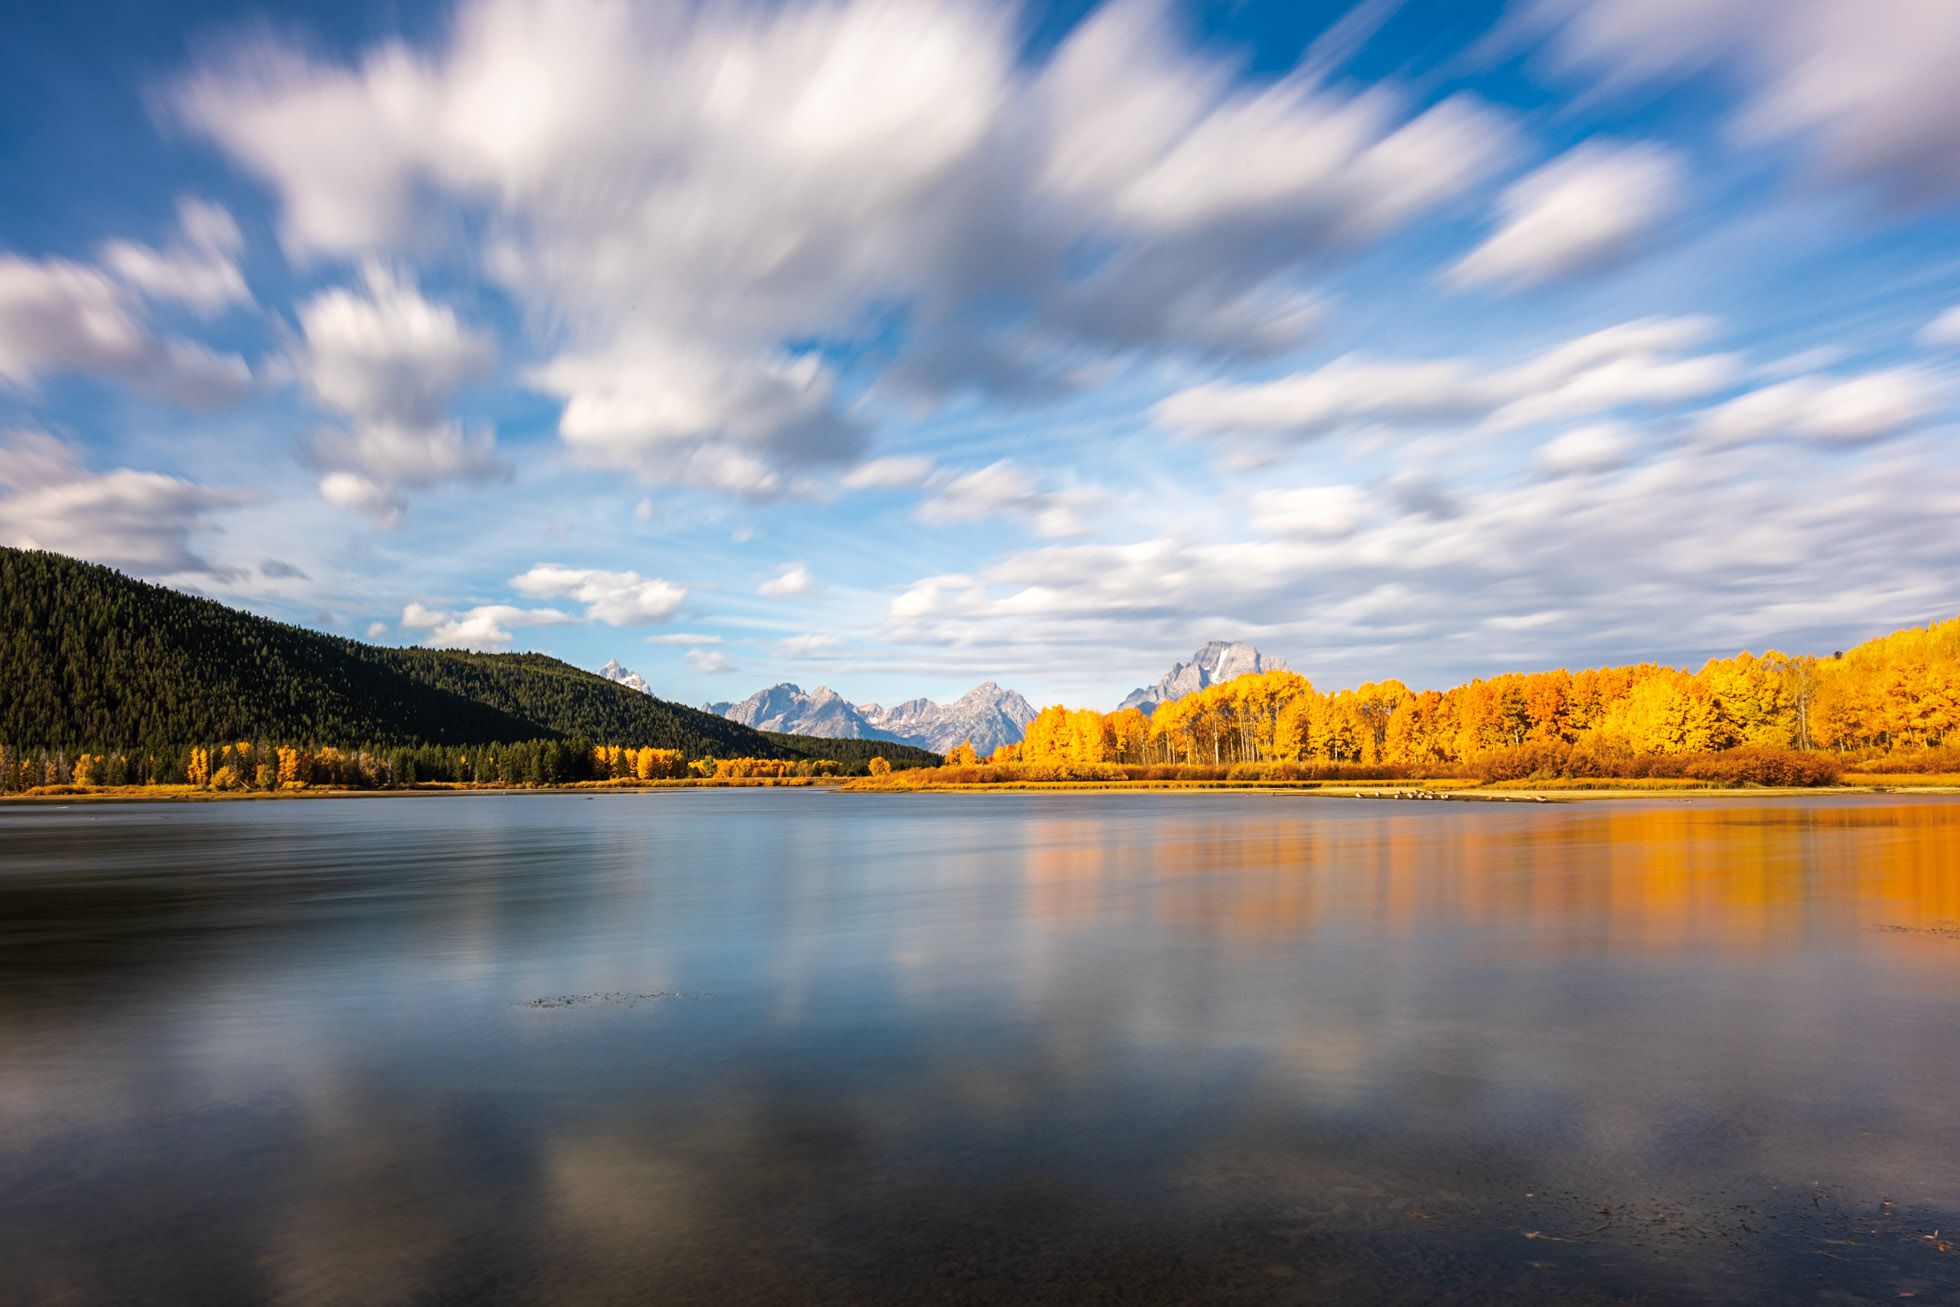 30 second exposure at Oxbow Bend with a 10 stop Neutral Density Filter